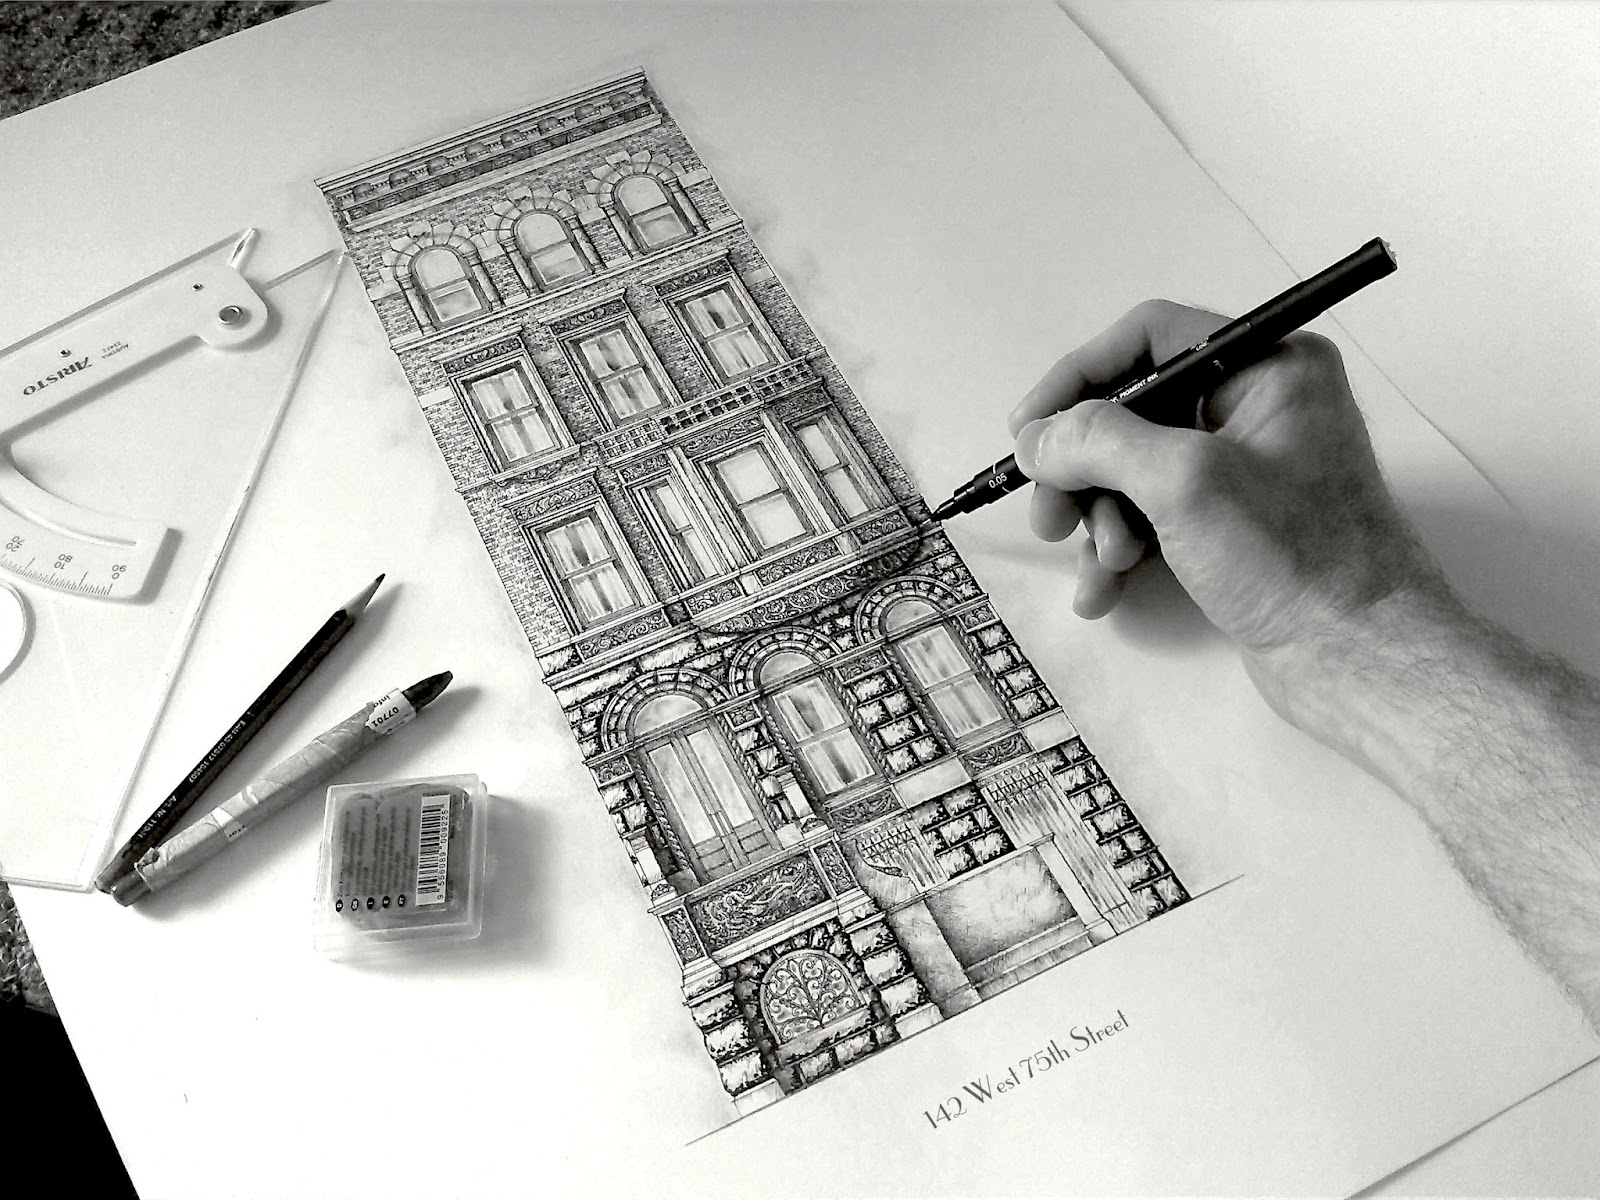 09-Rusticated-Arches-New-York-City-Jamie-Cameron-Intricate-Architectural-Drawings-and-Illustrations-www-designstack-co